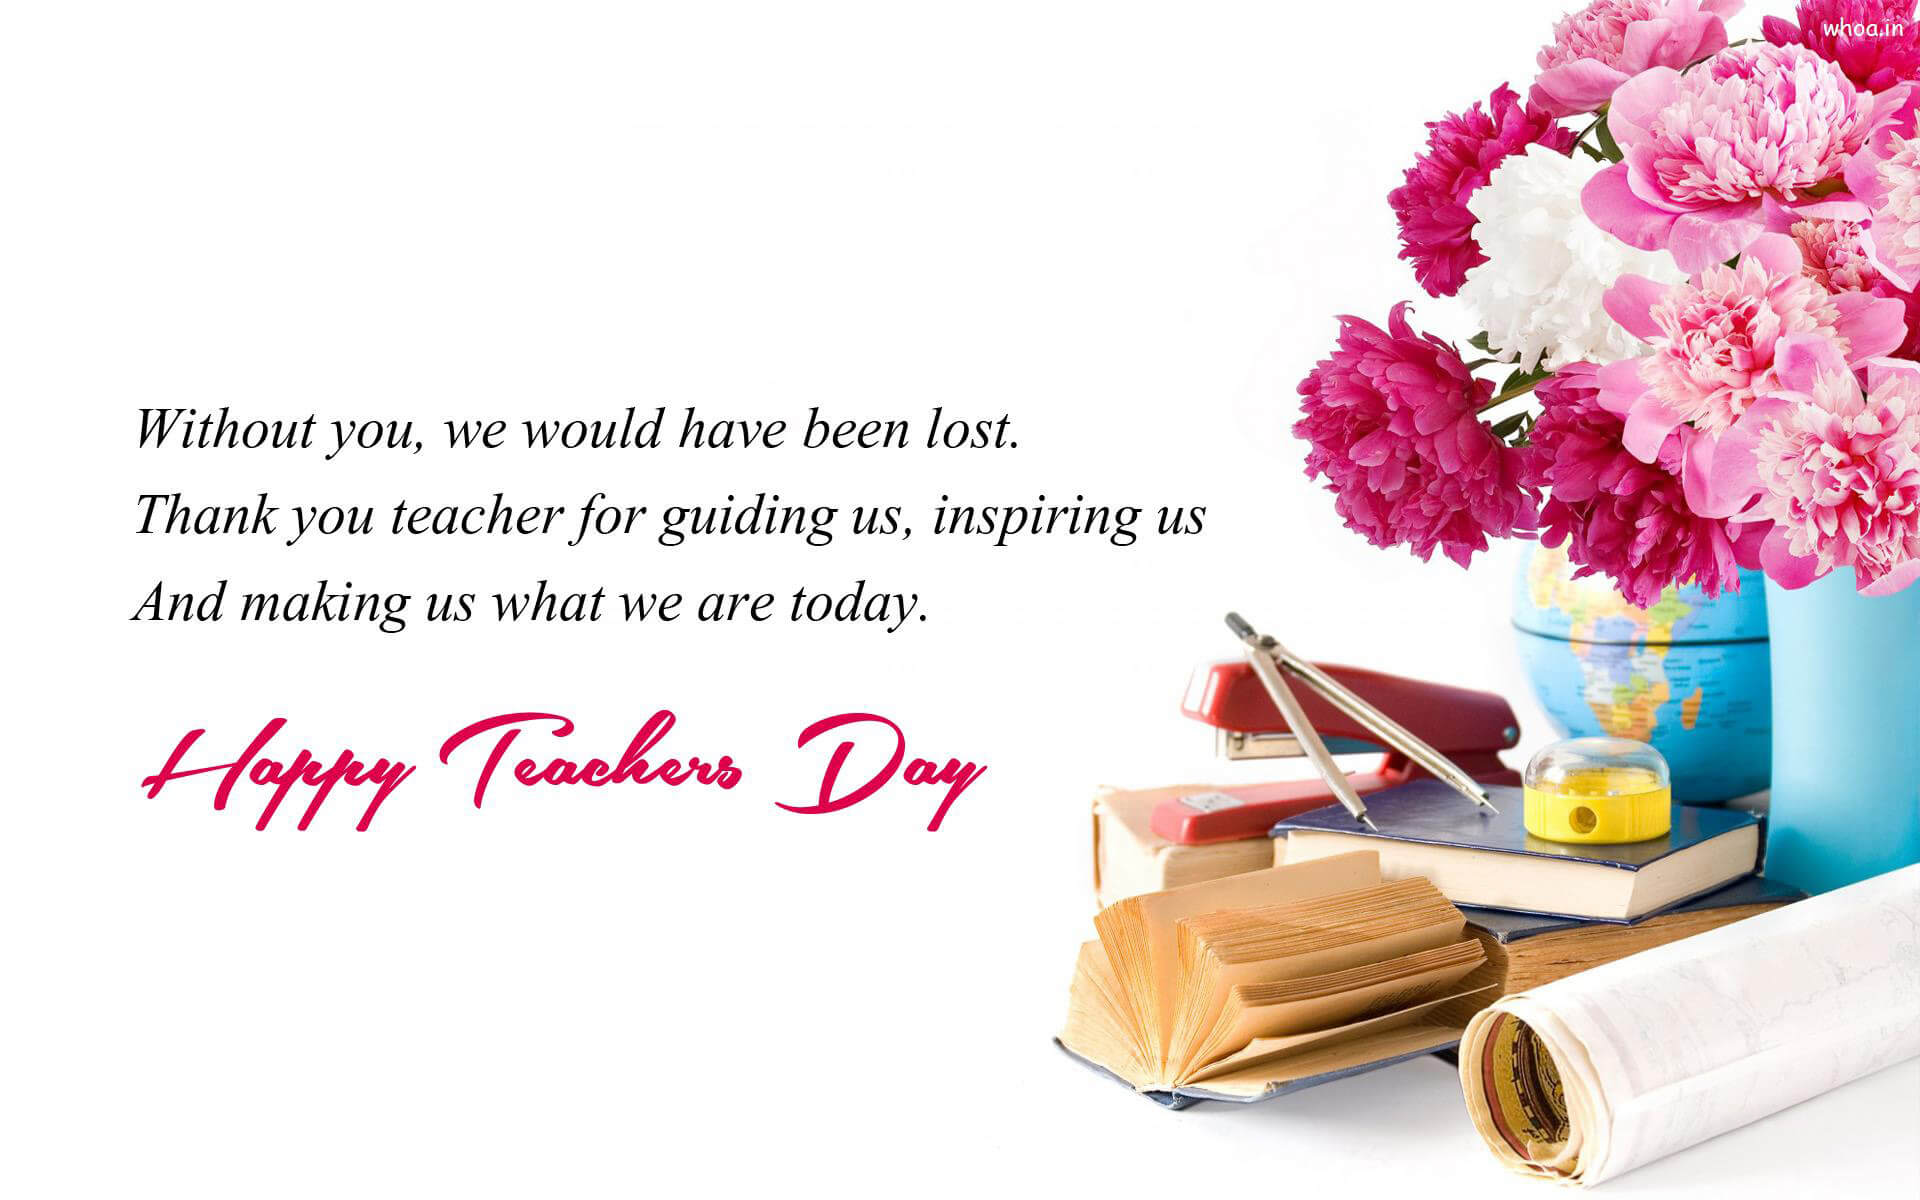 Happy teachers day wishes cute best hd wallpaper altavistaventures Choice Image